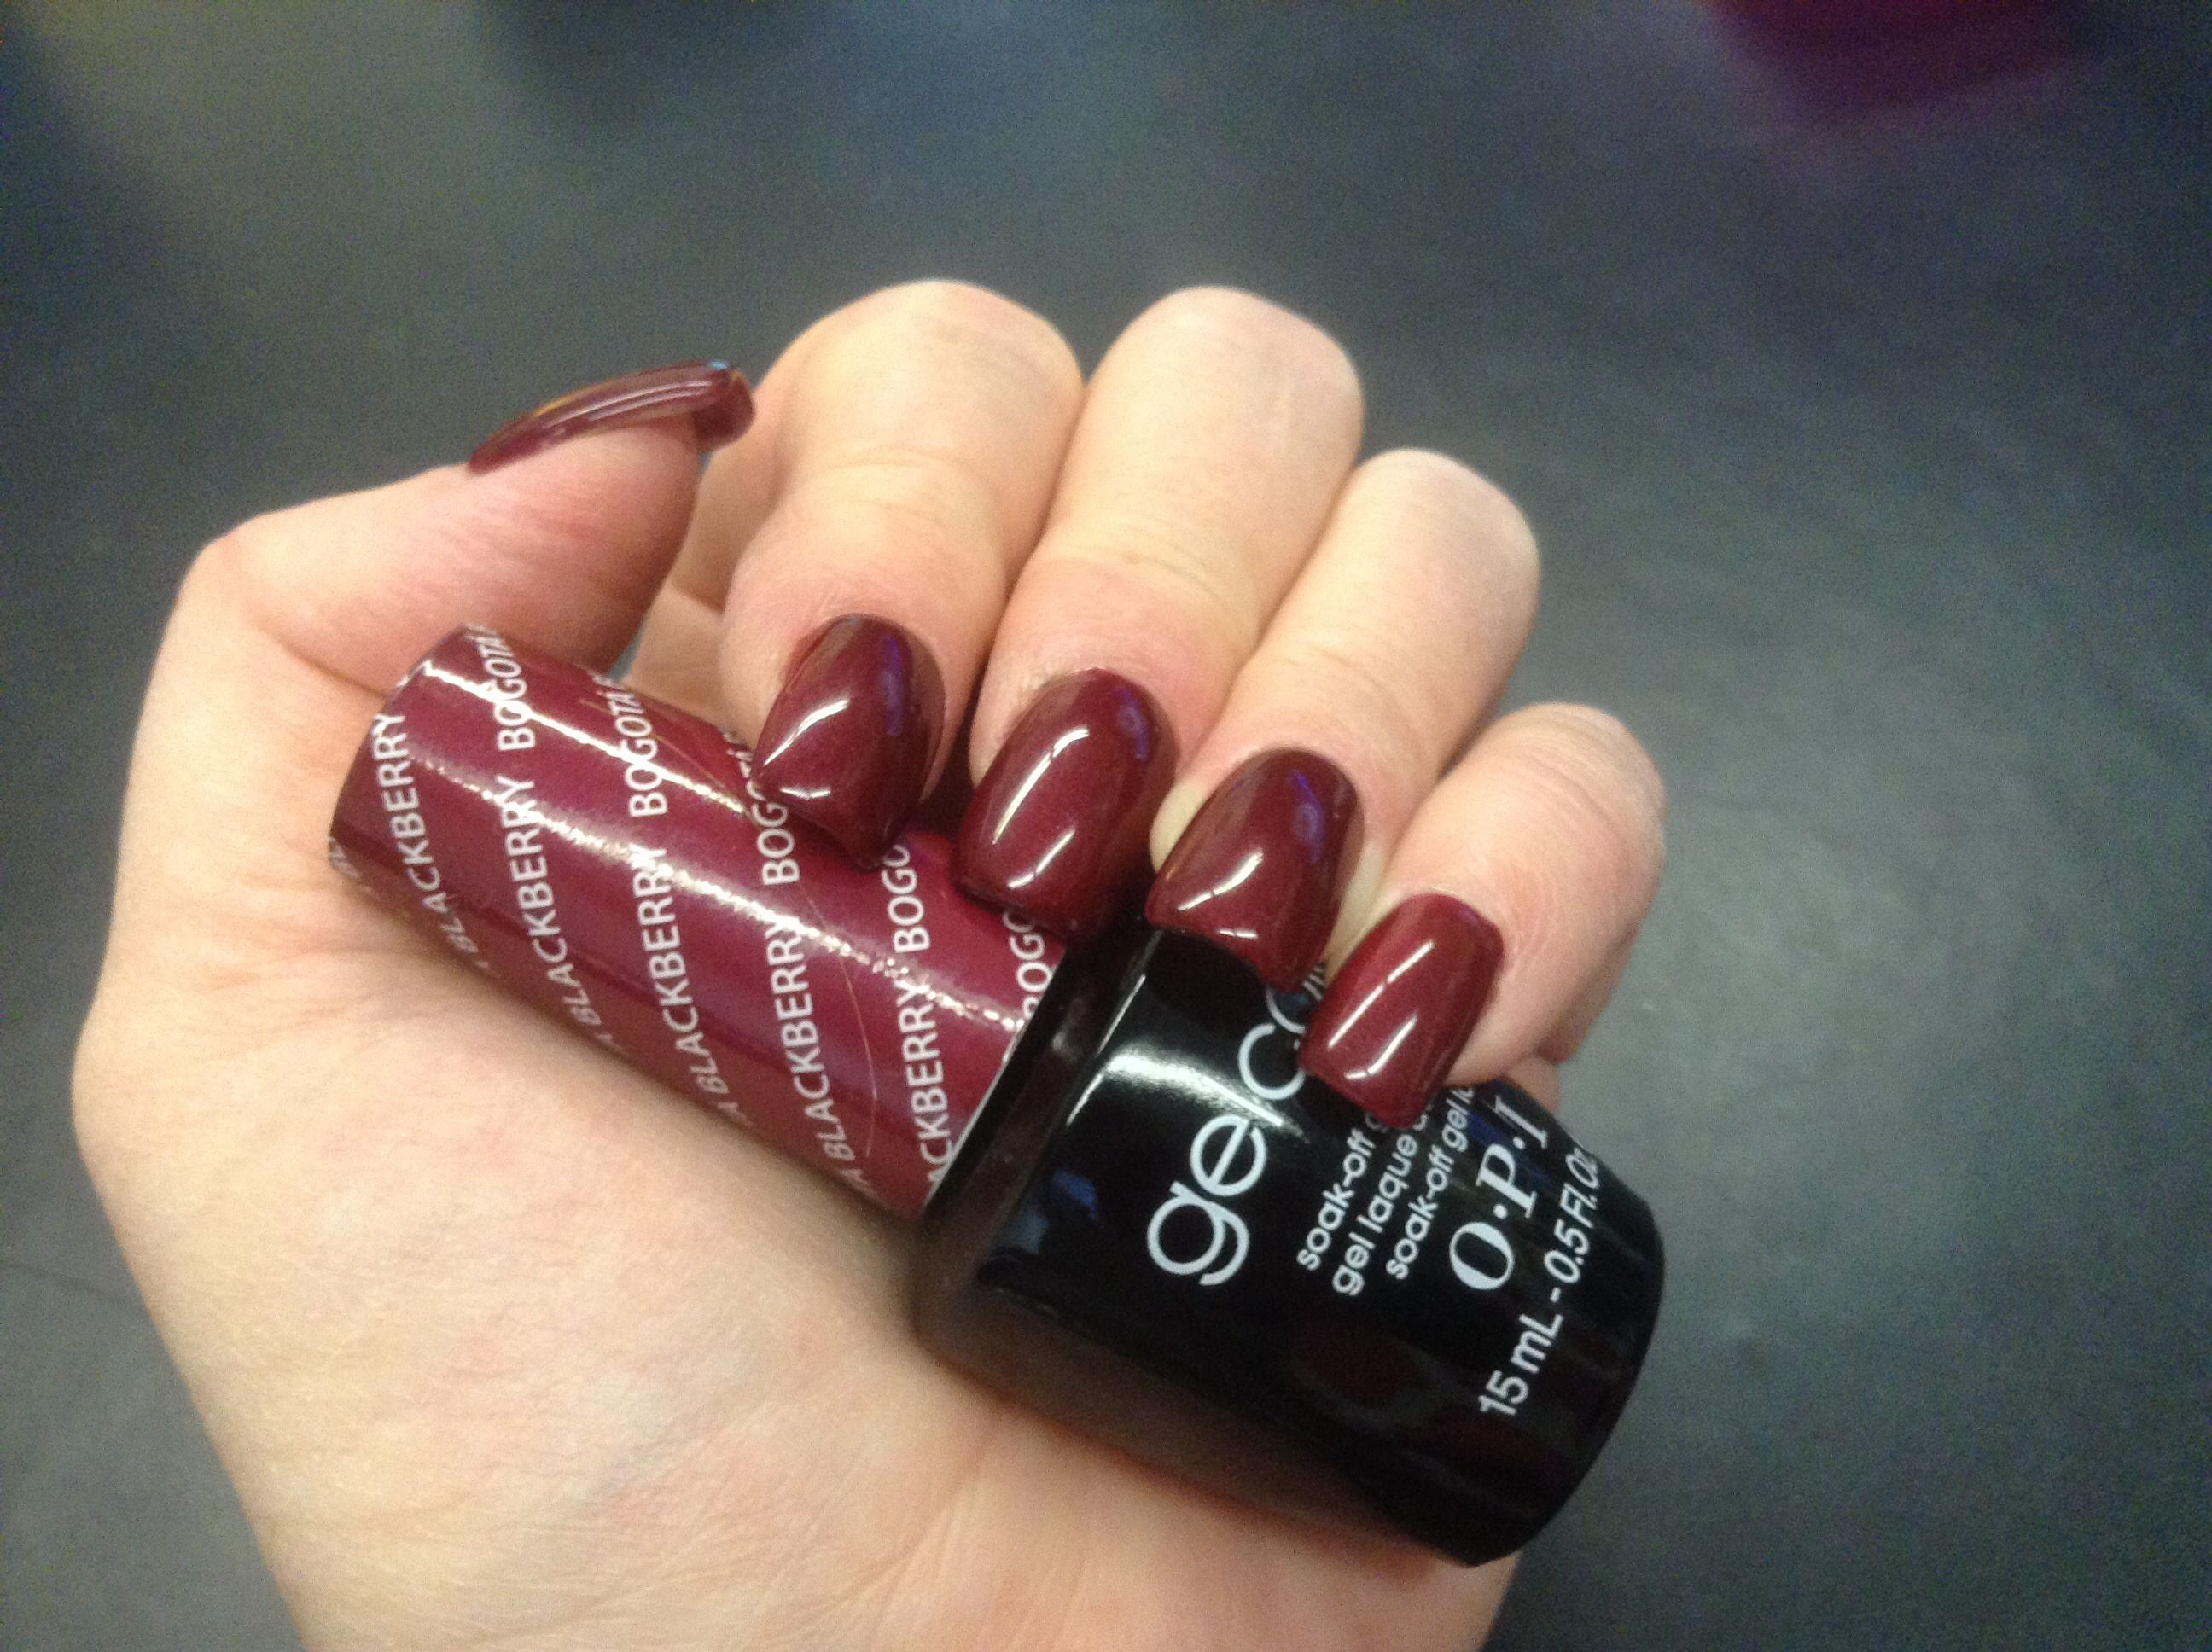 Bagota blackberry opi gelcolor nails pinterest opi bagota blackberry opi gelcolor nails pinterest opi blackberry and mani pedi nvjuhfo Images